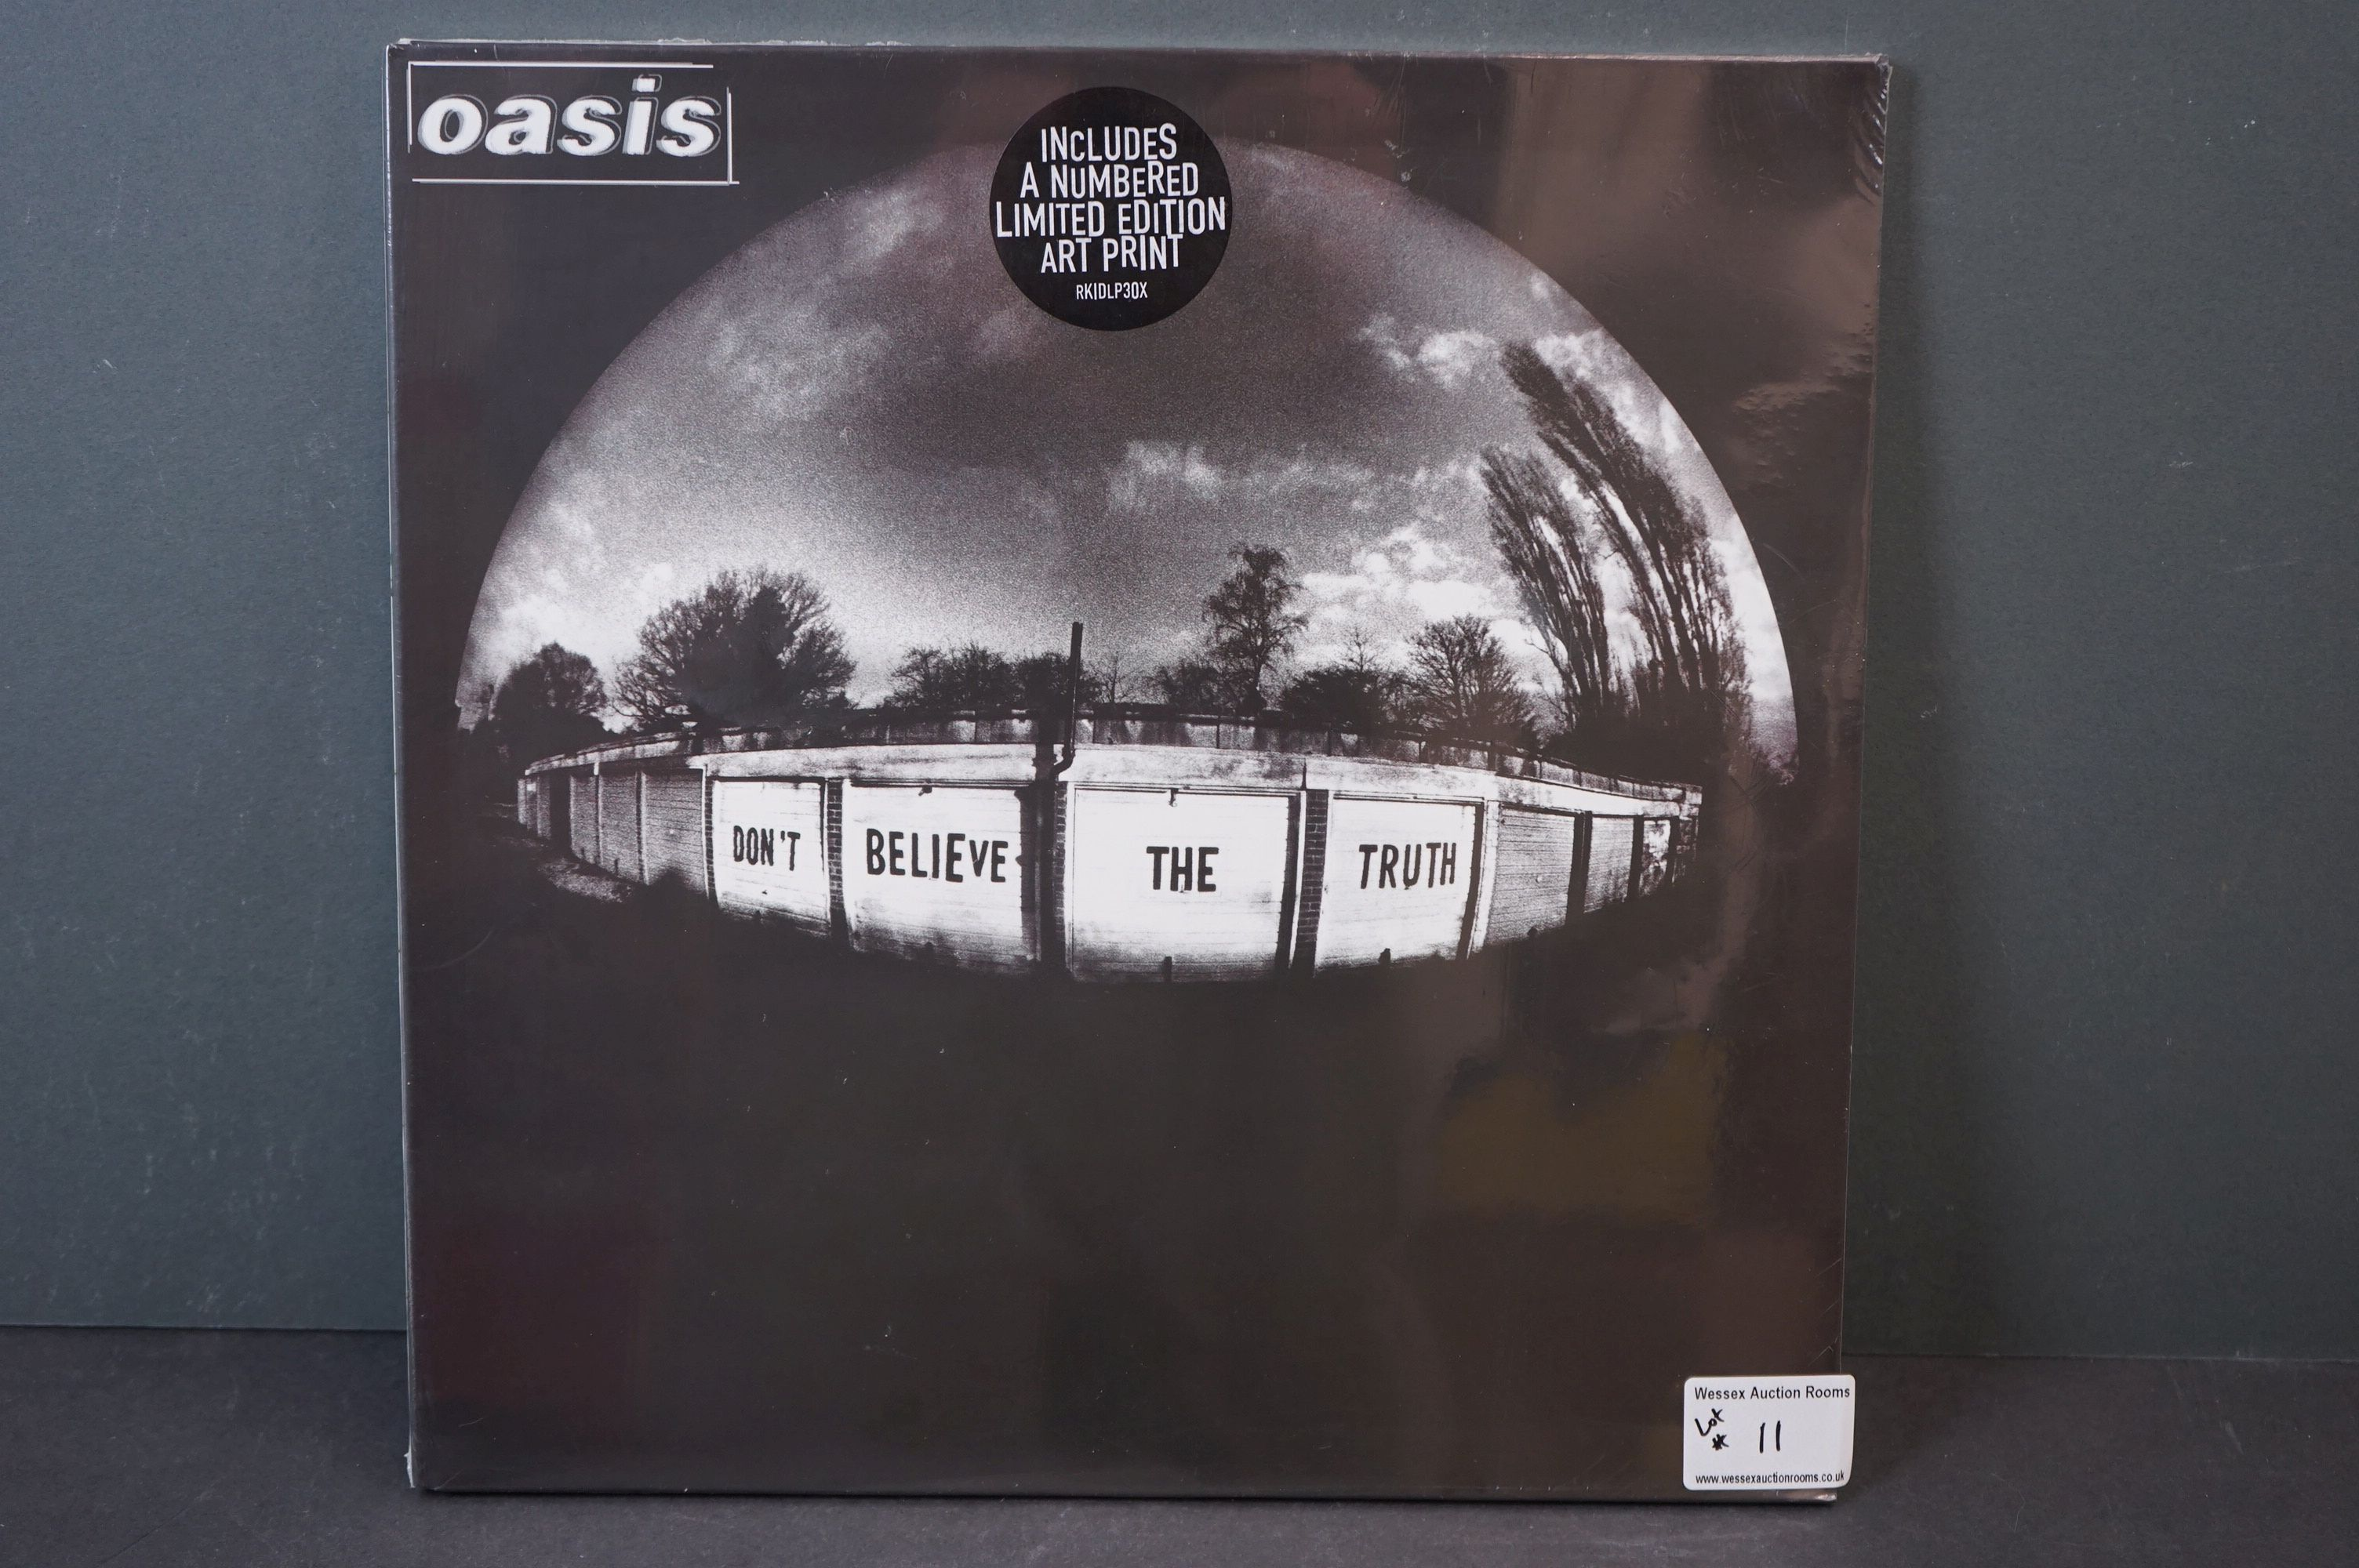 Vinyl - Oasis Don't Believe The Truth LP on Big Brother RKIDLP3OX, with ltd edn Art Print, sealed